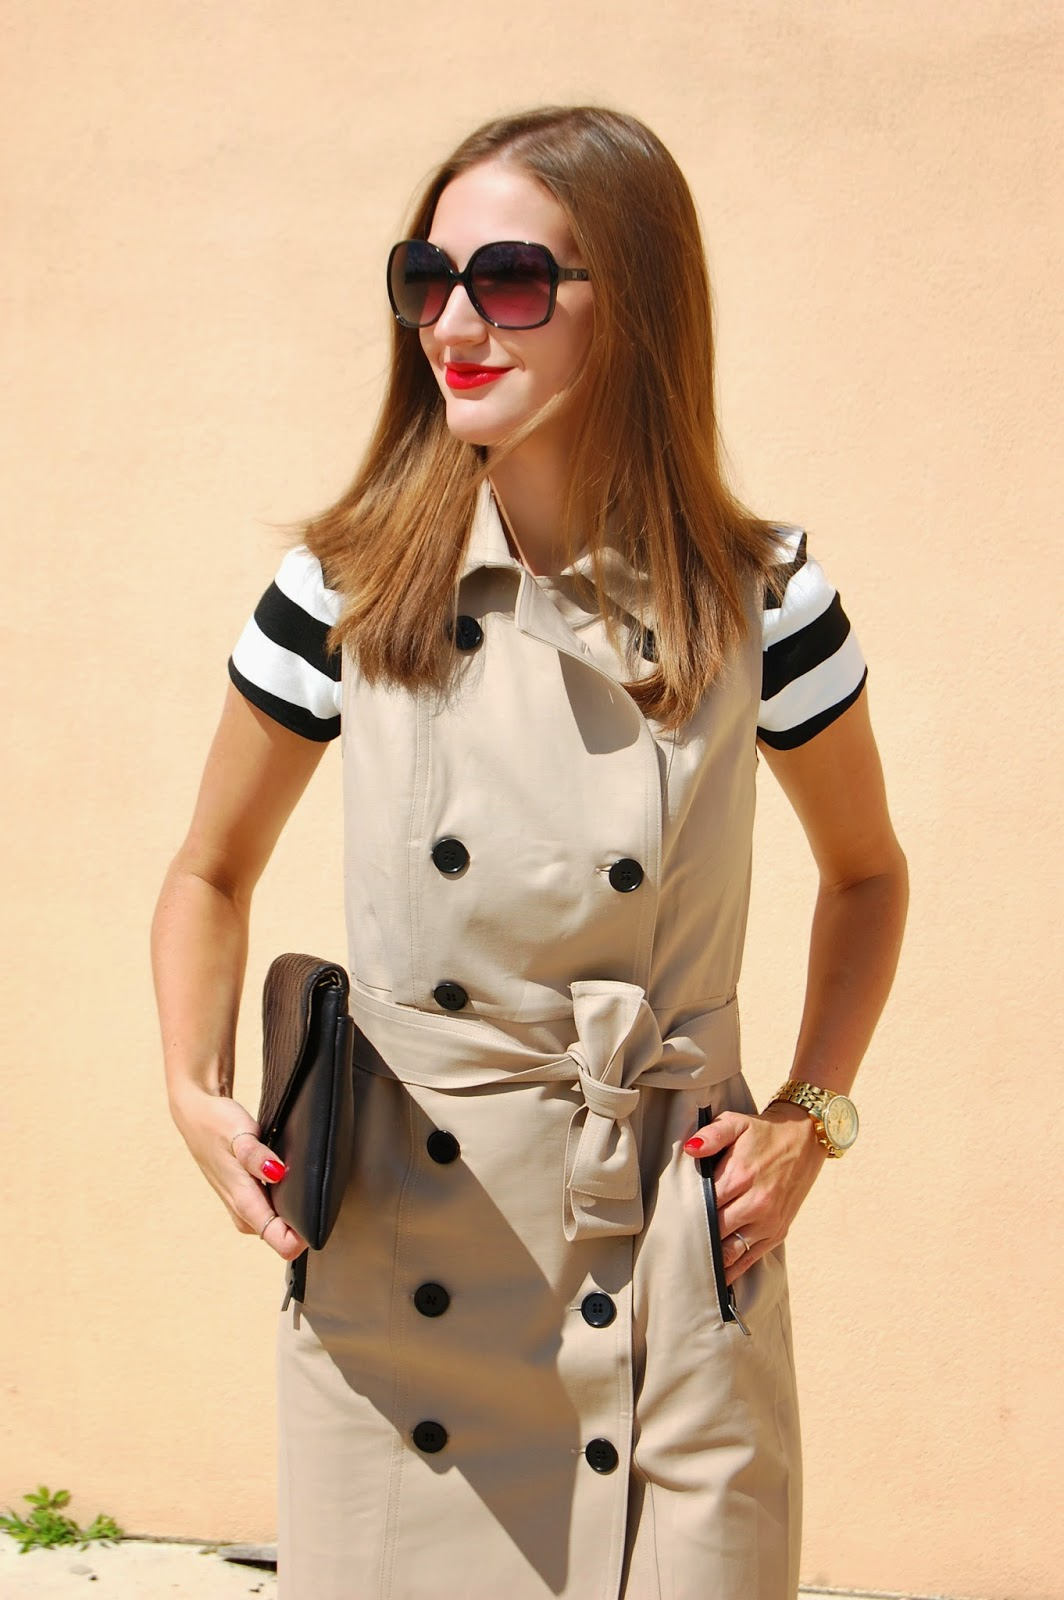 Wearing Ann Taylor Sleeveless Trench Coat, Striped Top